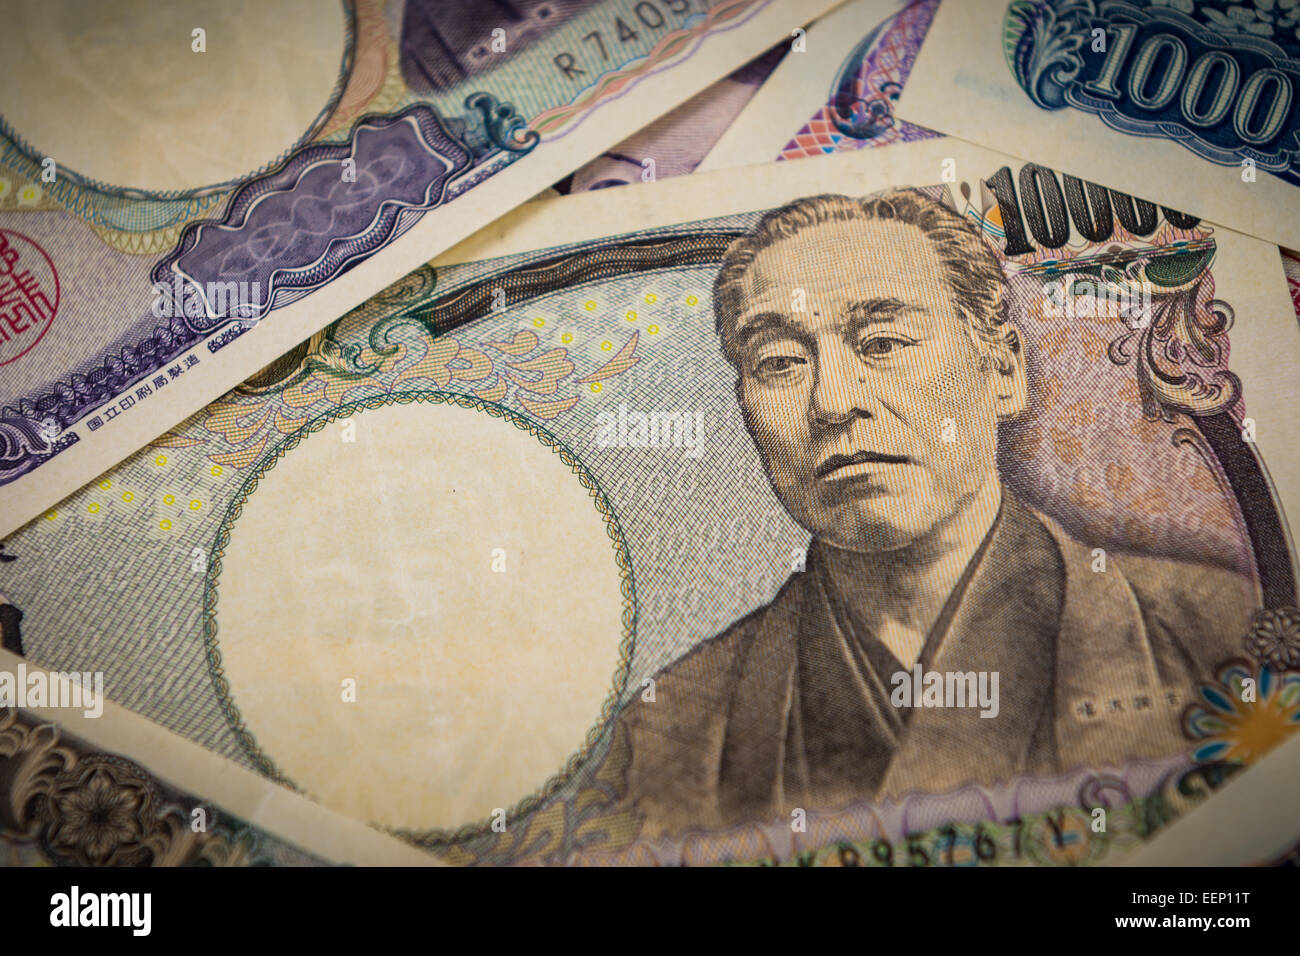 Closeup of a pile of Japanese yen. - Stock Image